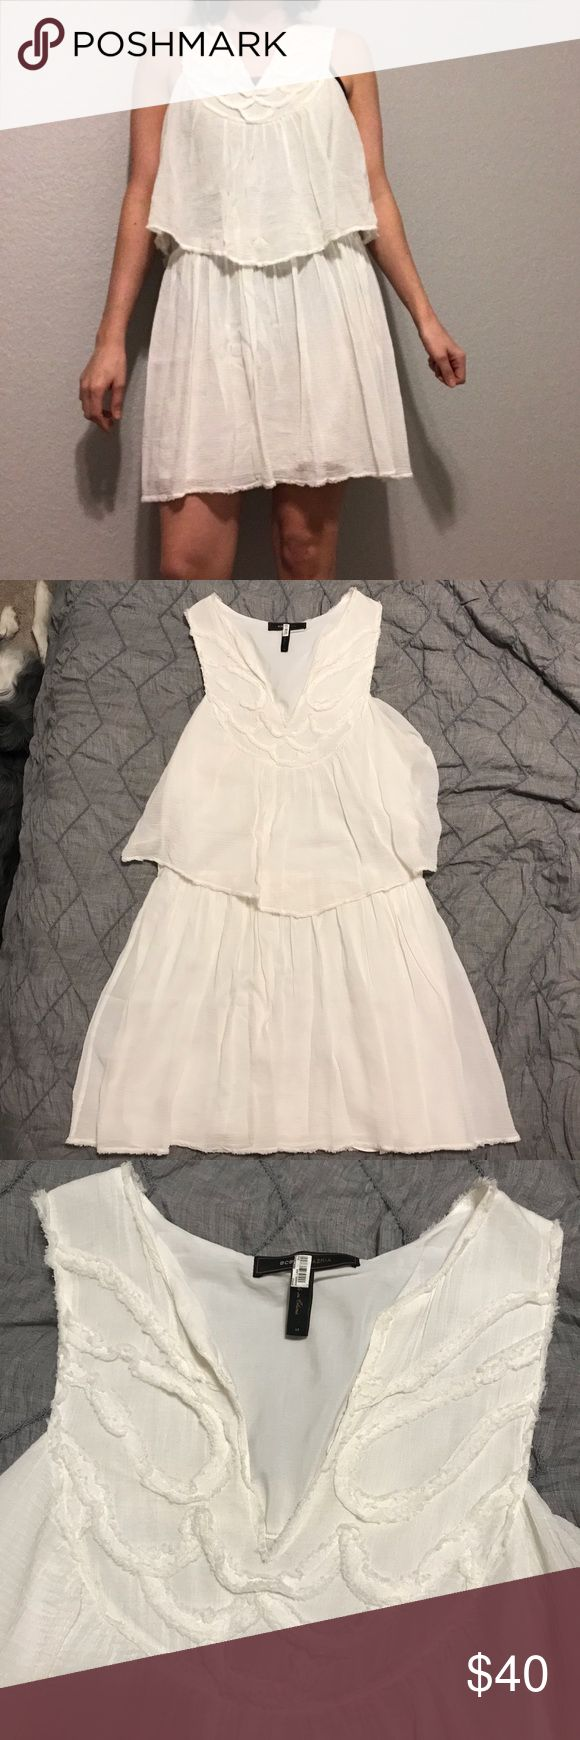 BCBG MaxAzria Gauze Dress Gauze tiered dress. This is pre-owned and has been dry cleaned. No stains, This is super cute for a summer beach vacation. BCBGMaxAzria Dresses